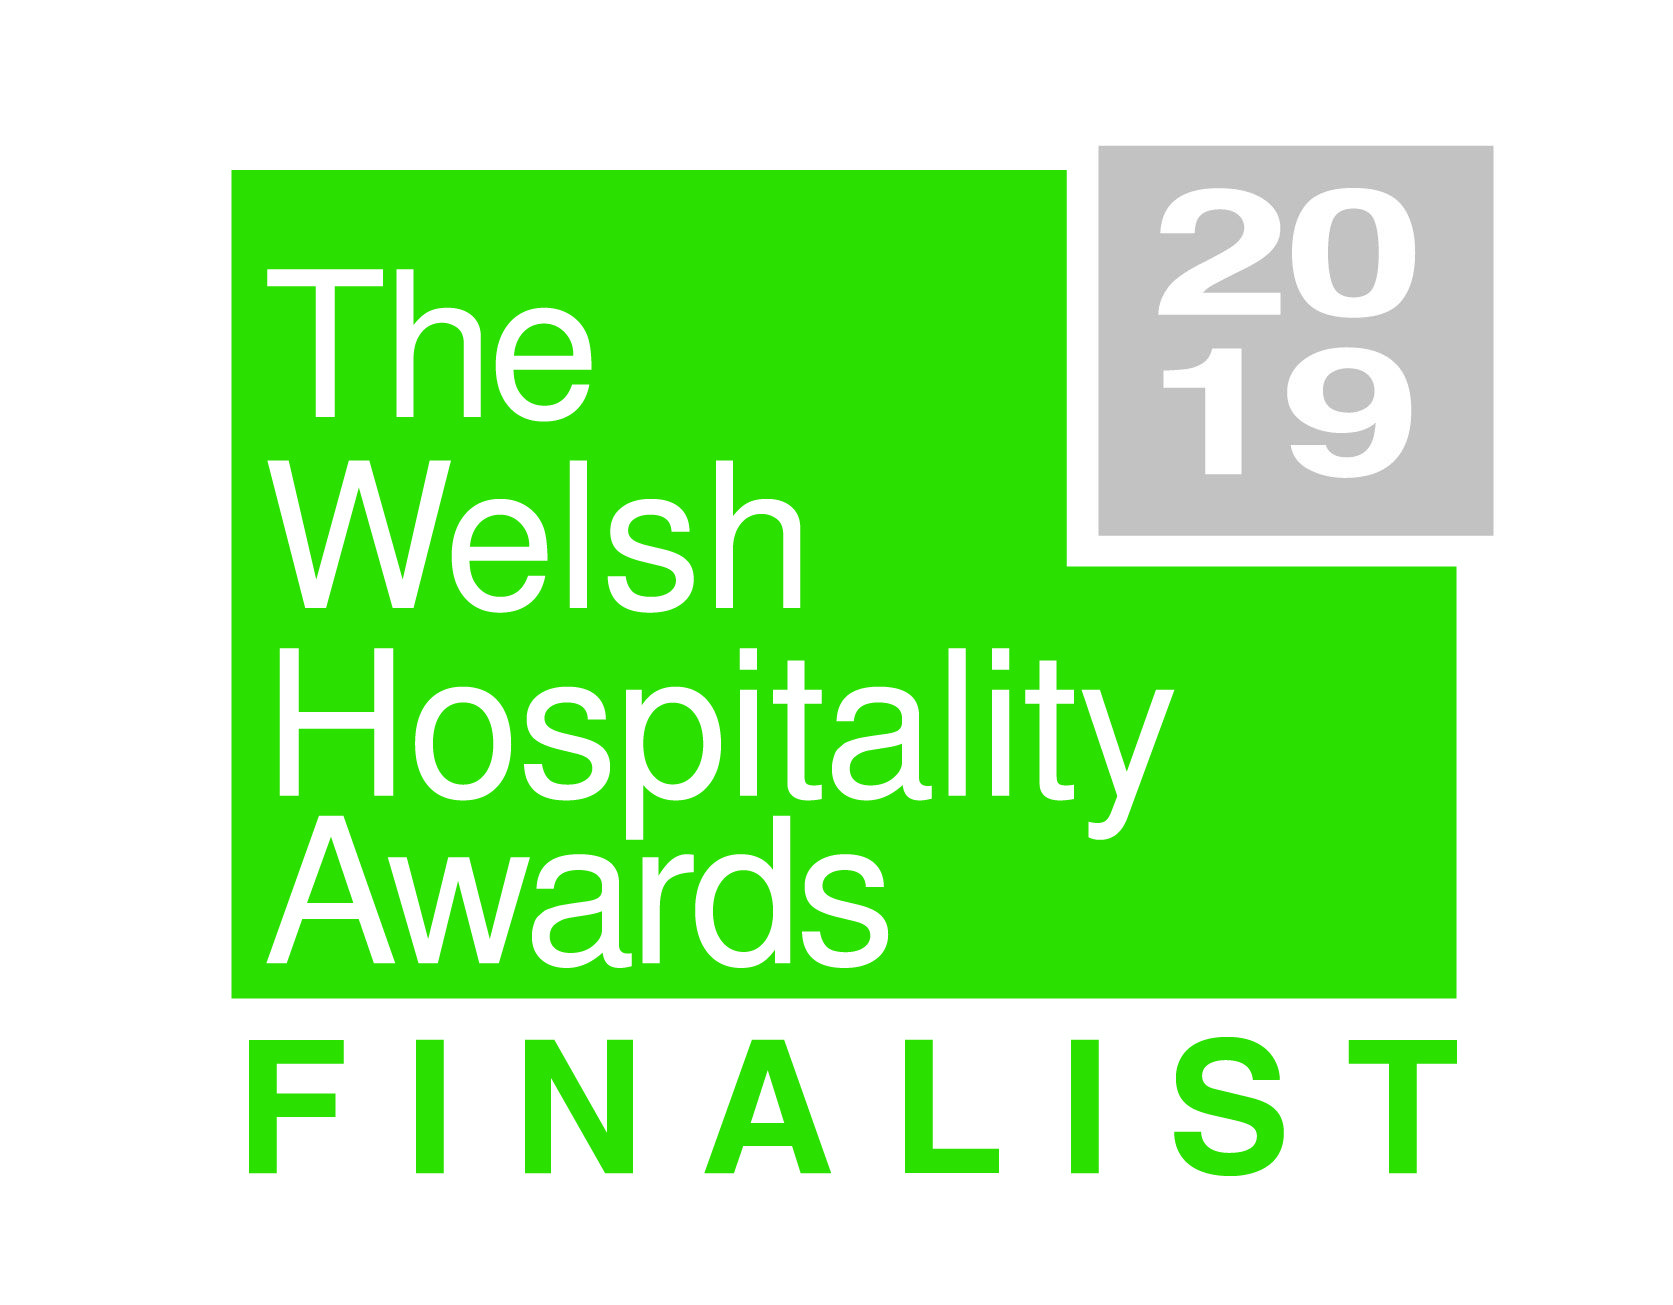 🏆City Hotel of the Year at the Welsh Hospitality Awards 🏆 It is with great pleasure that we announce that Future Inn Cardiff has been shortlisted for yet another award. The team are a finalist in the City Hotel of the Year category at the Welsh Hospitality Awards 2019. 🏆 #Cardiff #CardiffBay #HospitalityAwards #WelshHospitalityAwards #Finalist #AwardsFinalist #Awards #Hotel #CityHotel #WelshAwards #Welsh #Hospitality